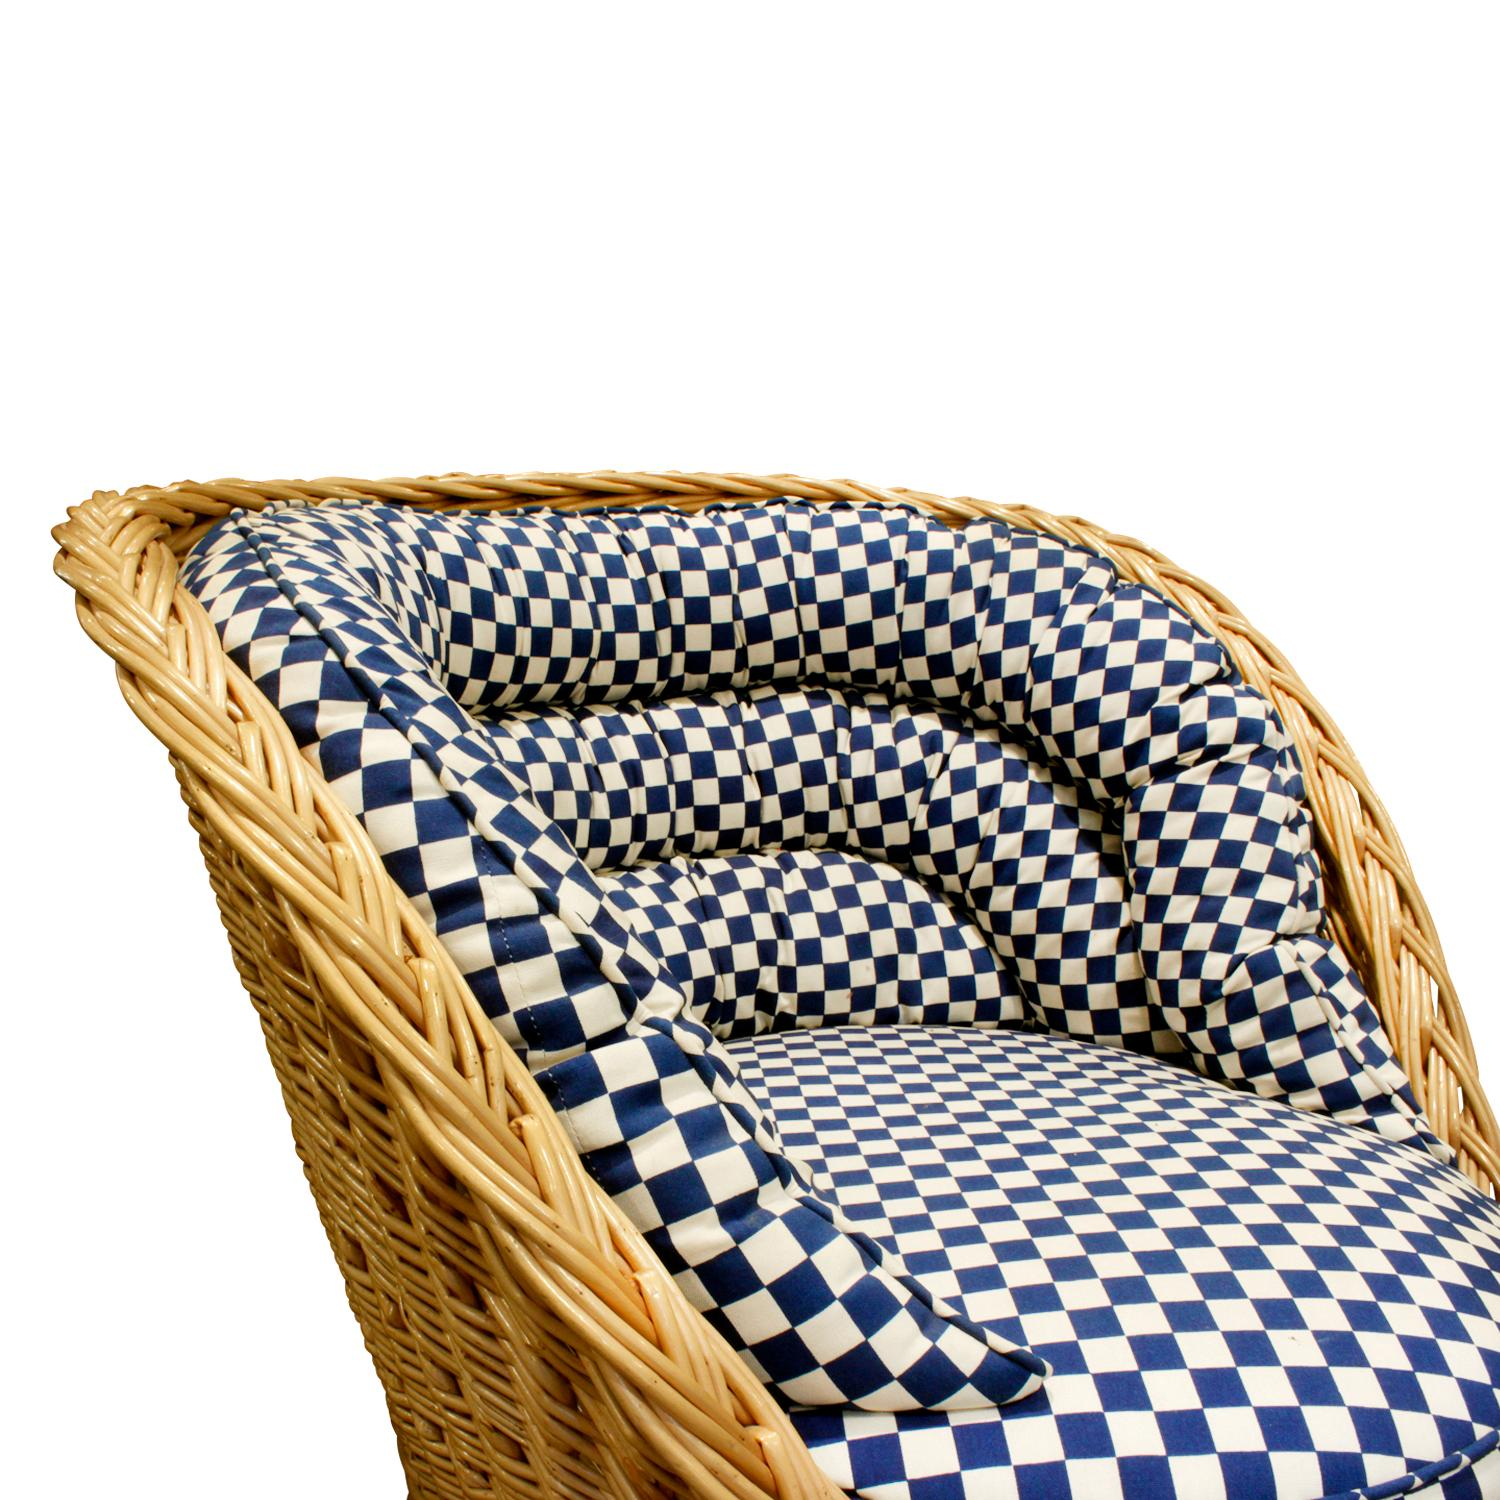 Fine Pair Of Studio Made Woven Wicker Lounge Chairs 1970S Ocoug Best Dining Table And Chair Ideas Images Ocougorg